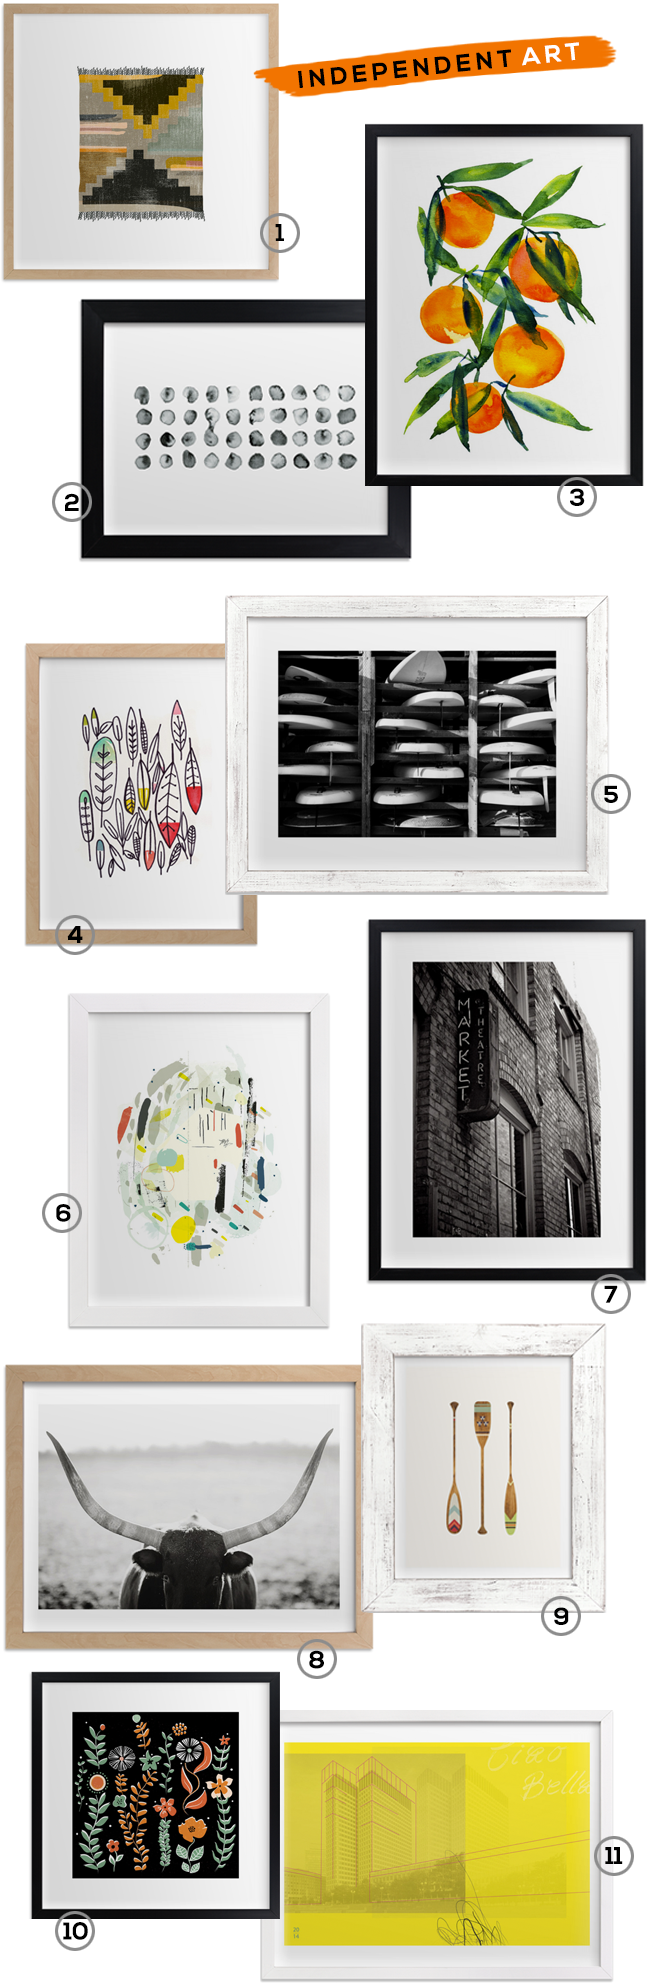 Independent Art Forever + a $500 Giveaway from Minted and Bubby & Bean!